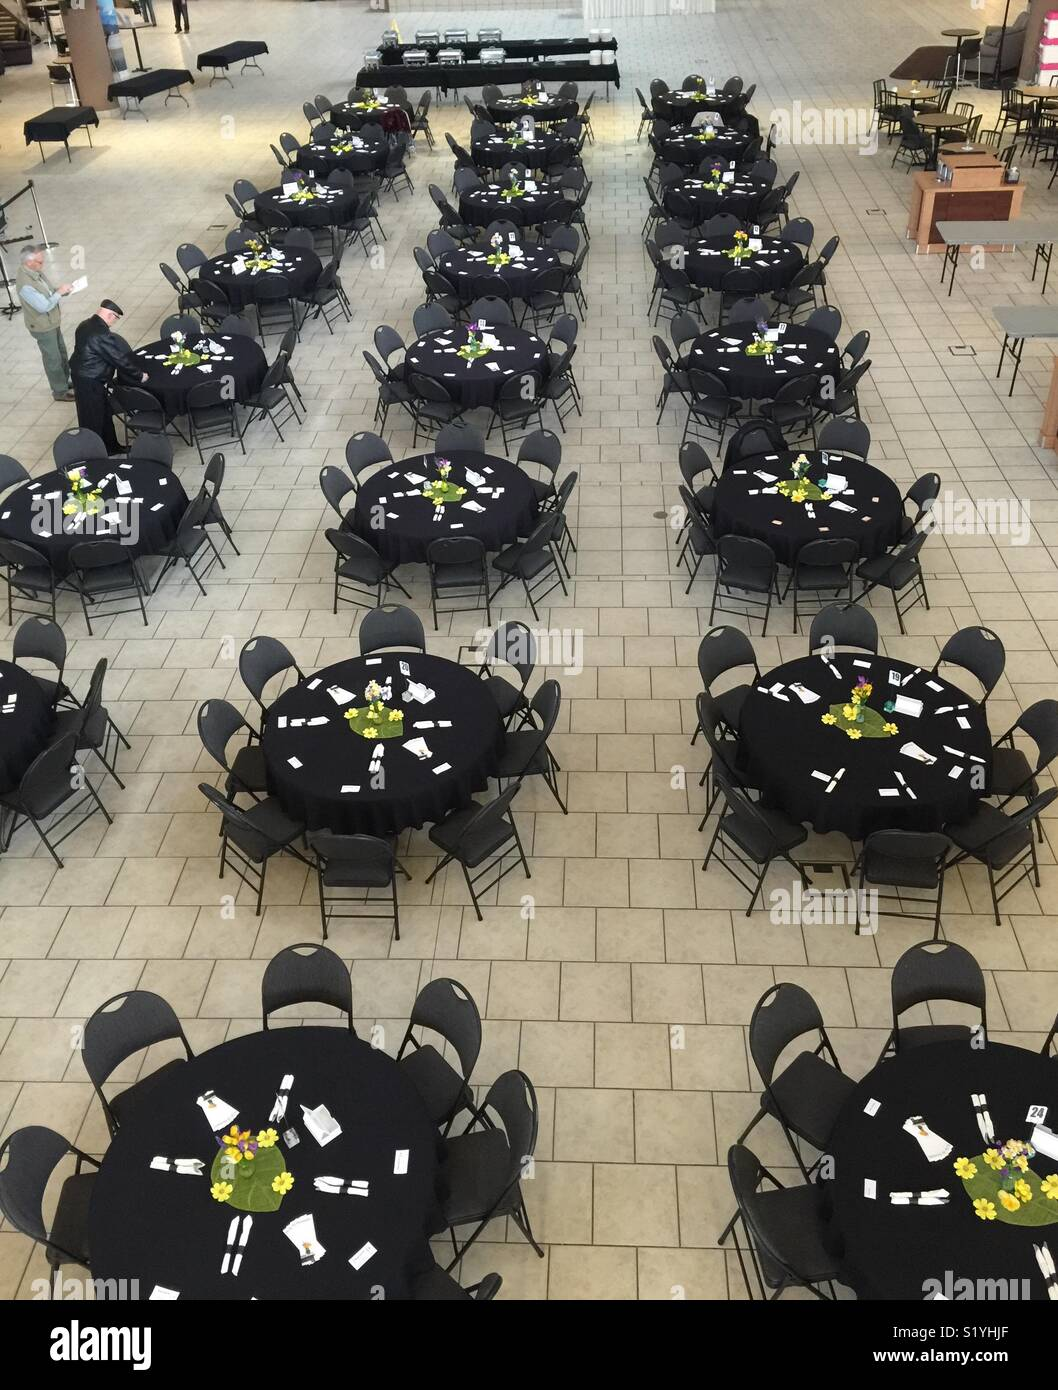 Setting up for a luncheon - Stock Image